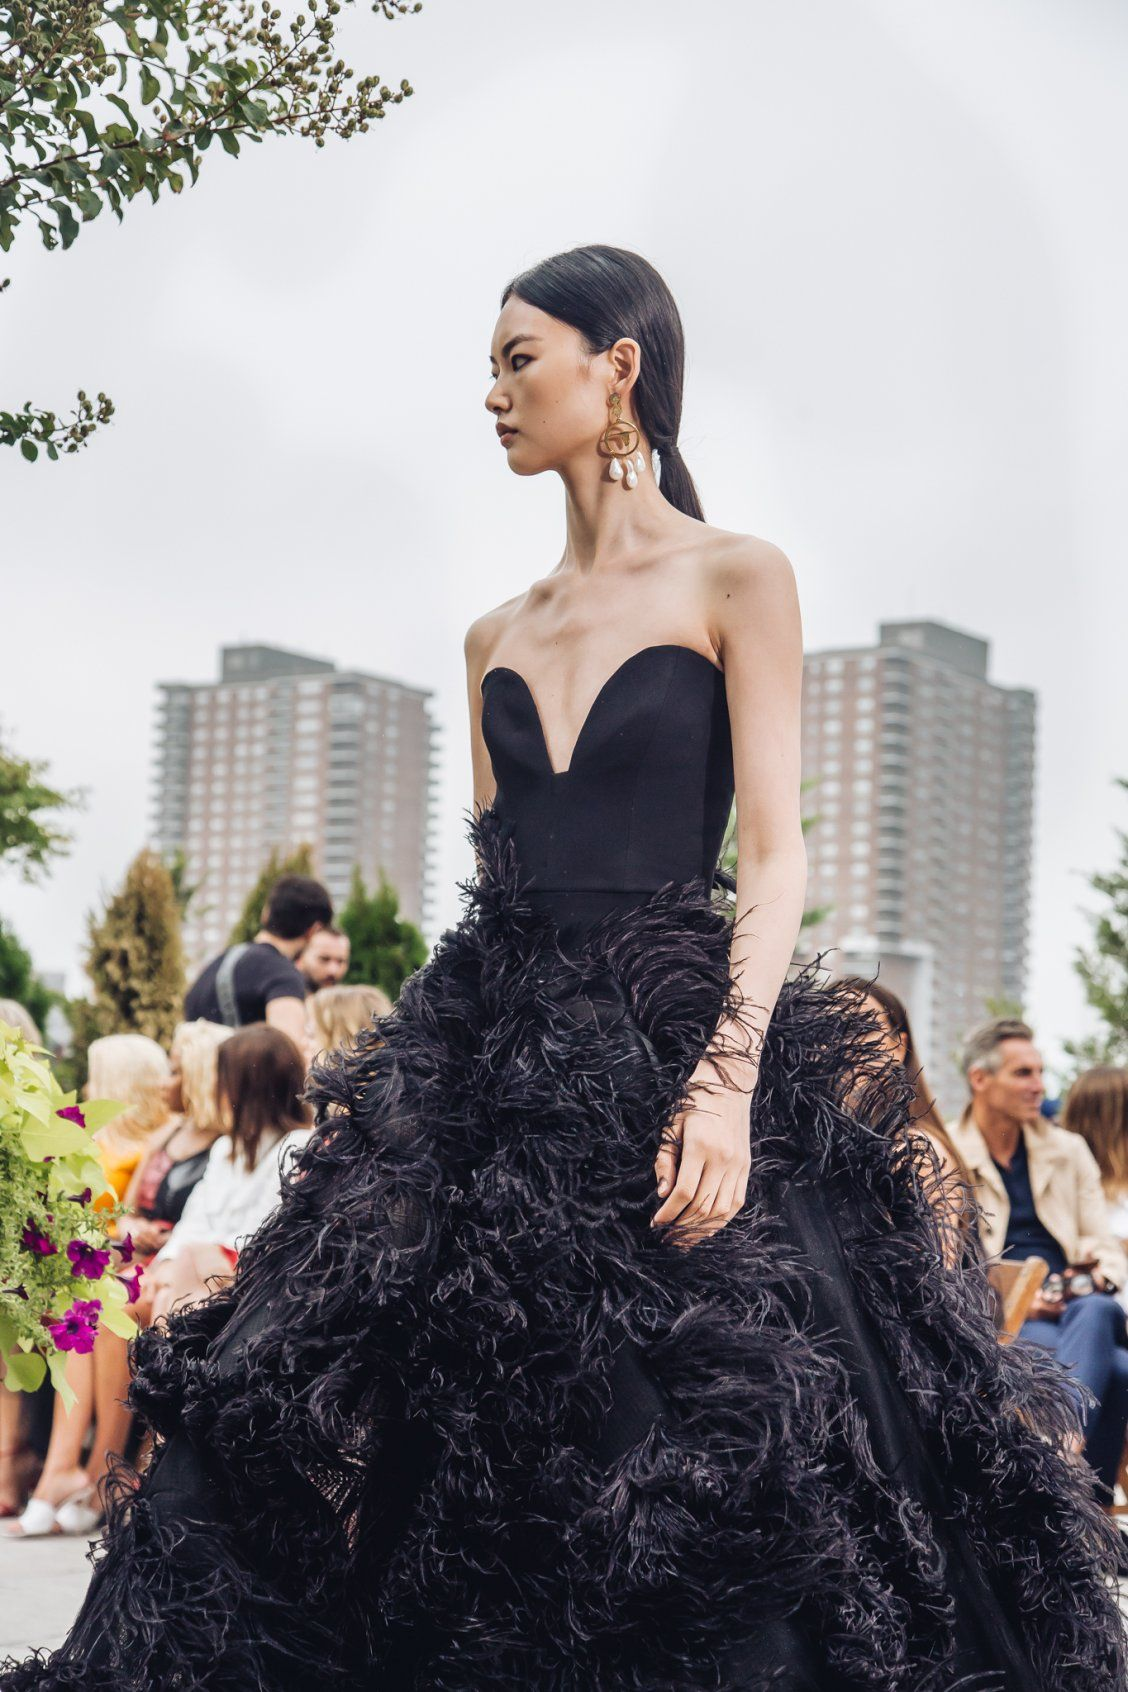 Model De Dressing Black Feather Embellished Strapless Gown By Oscar De La Renta